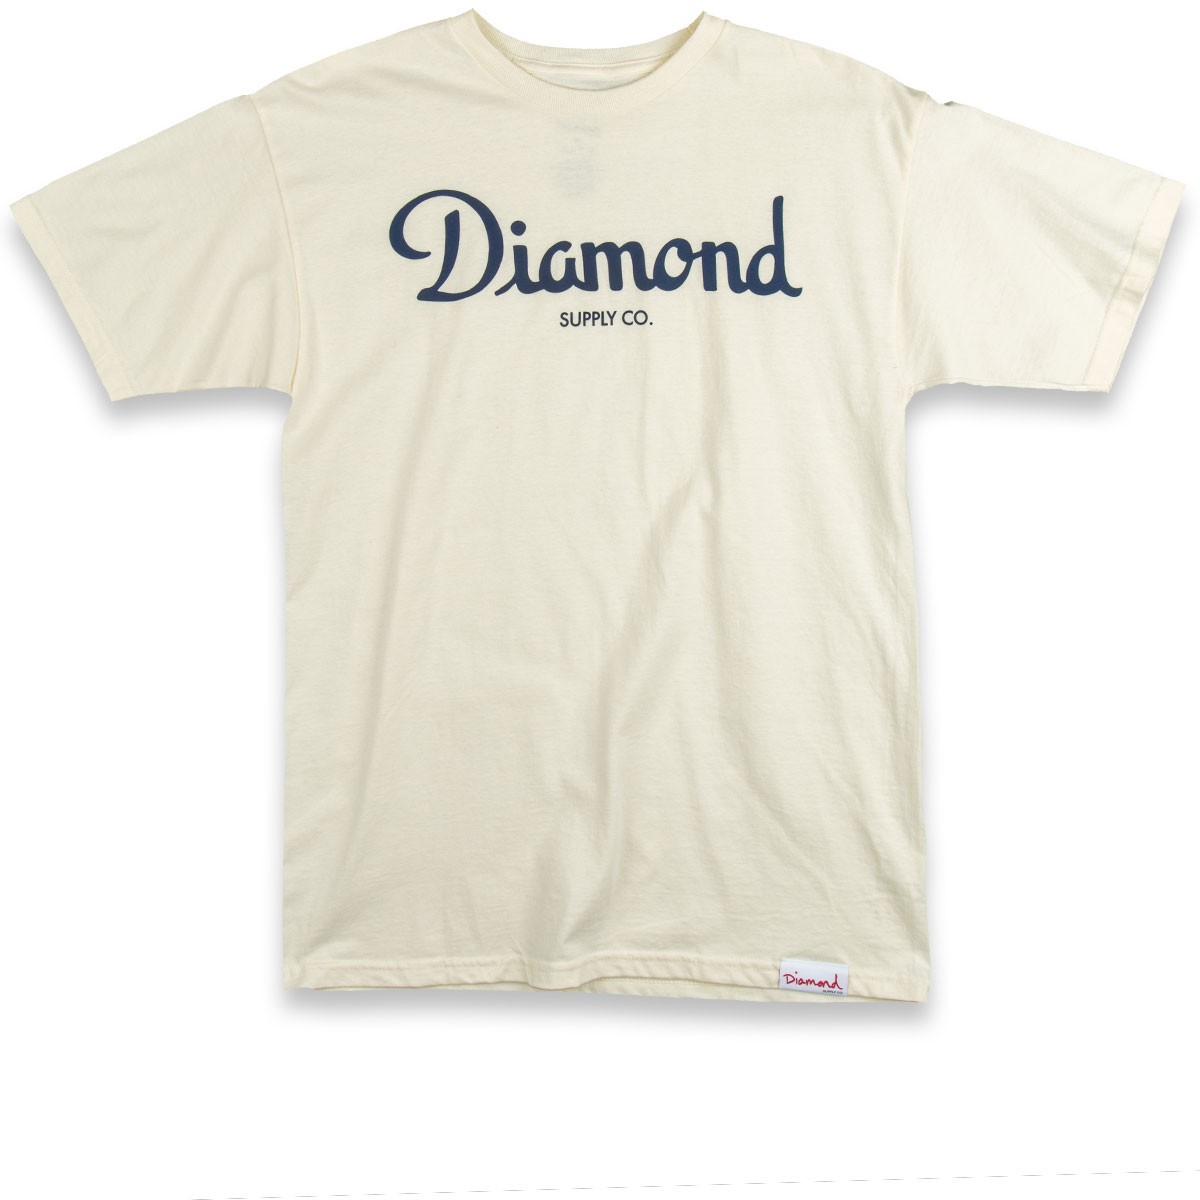 Diamond Supply Co. Champagne Script T-Shirt - Cream